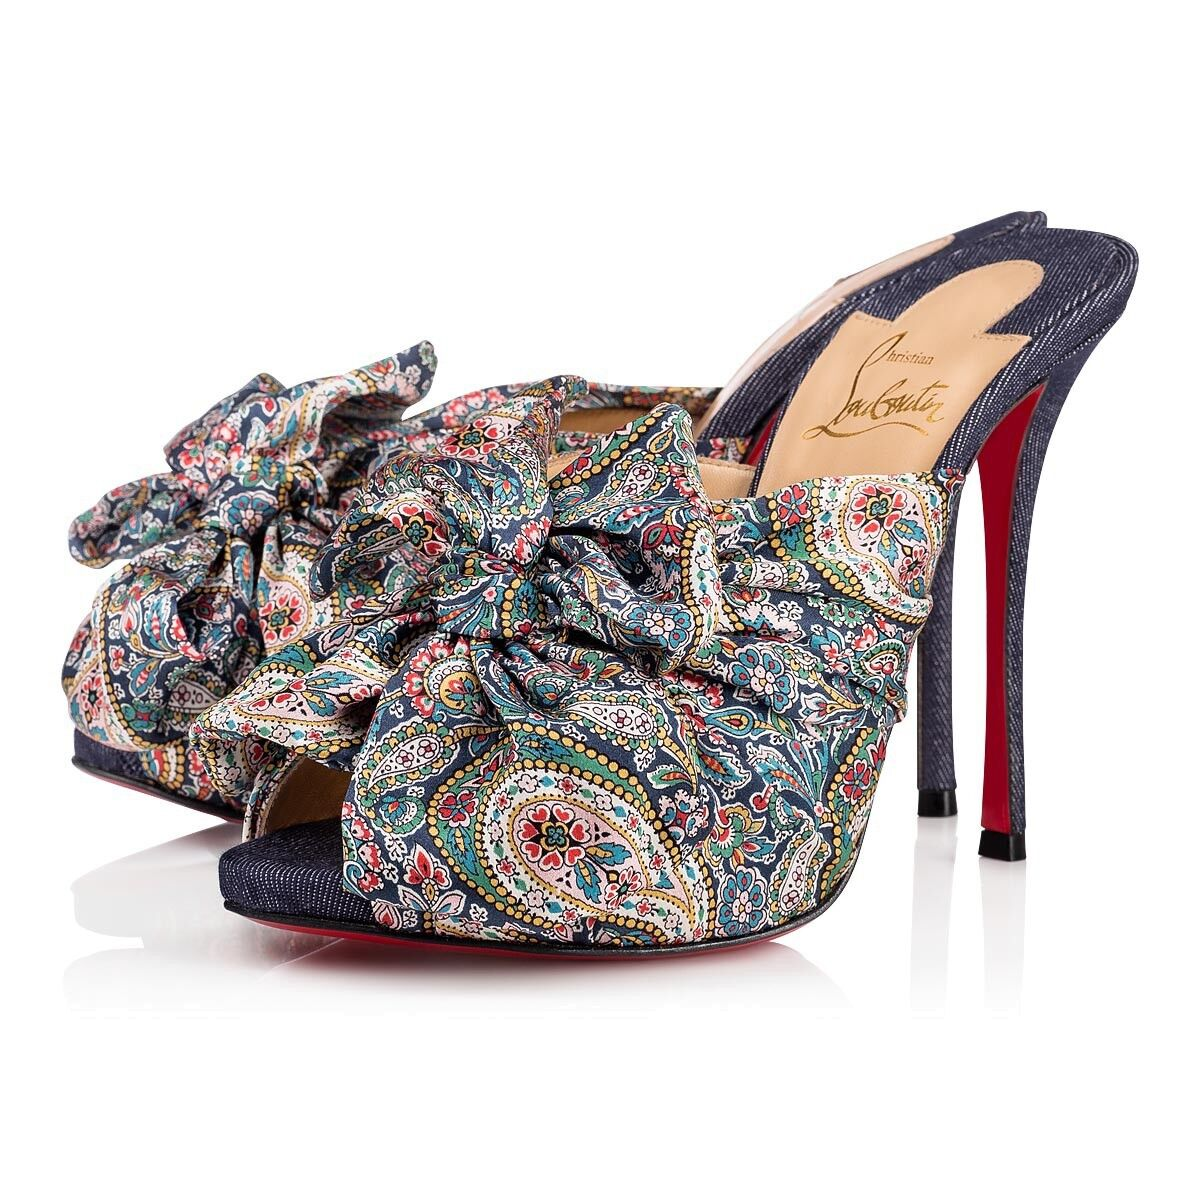 Christian Louboutin Moniquissima 120 bleu Denim Platform Sandal Heel Pump 37